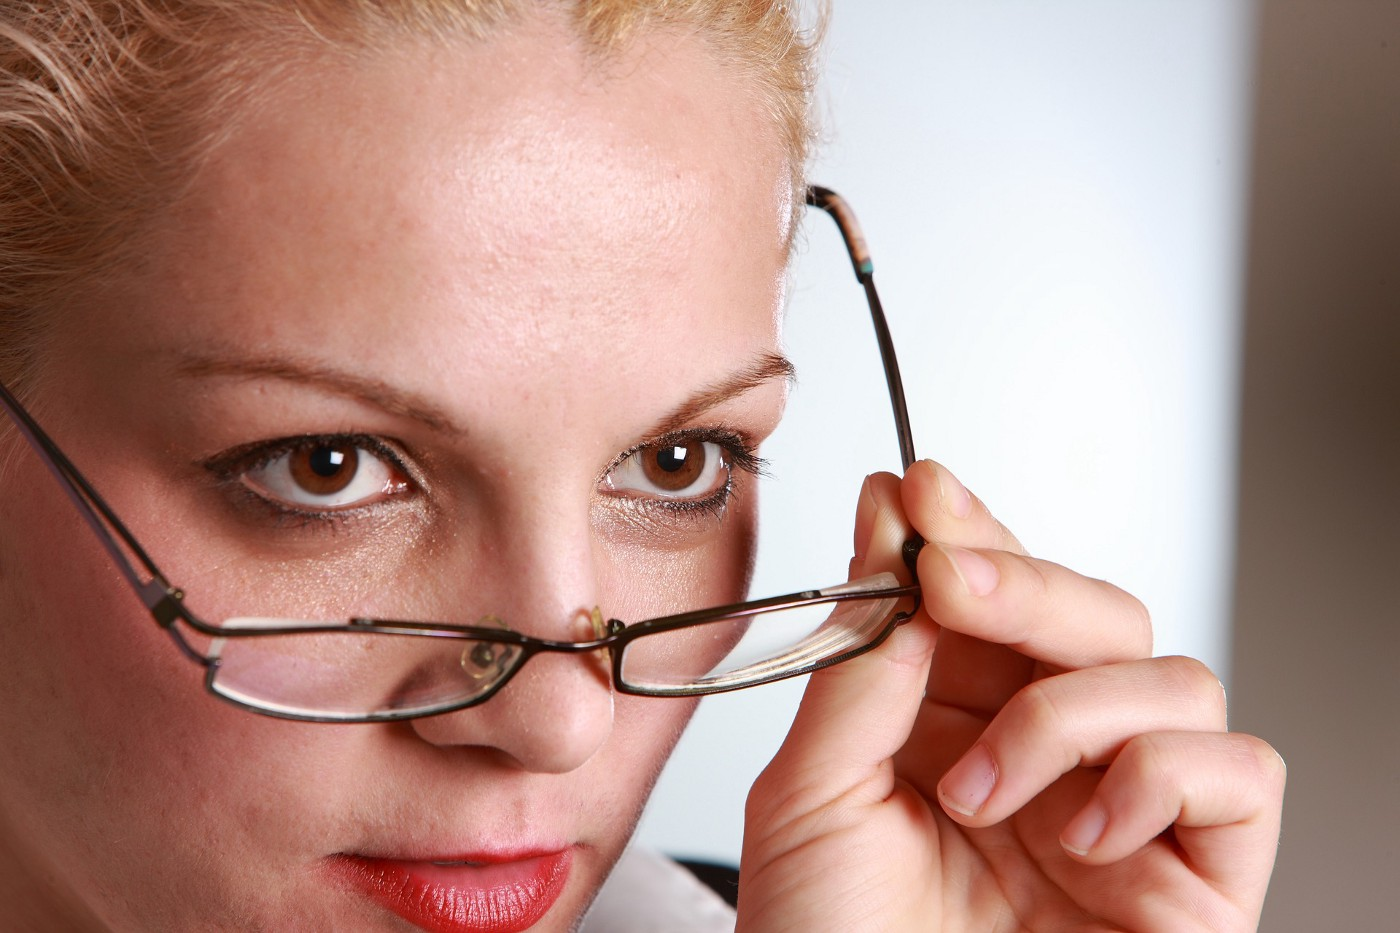 Close up of a woman's face. She is taking off glasses